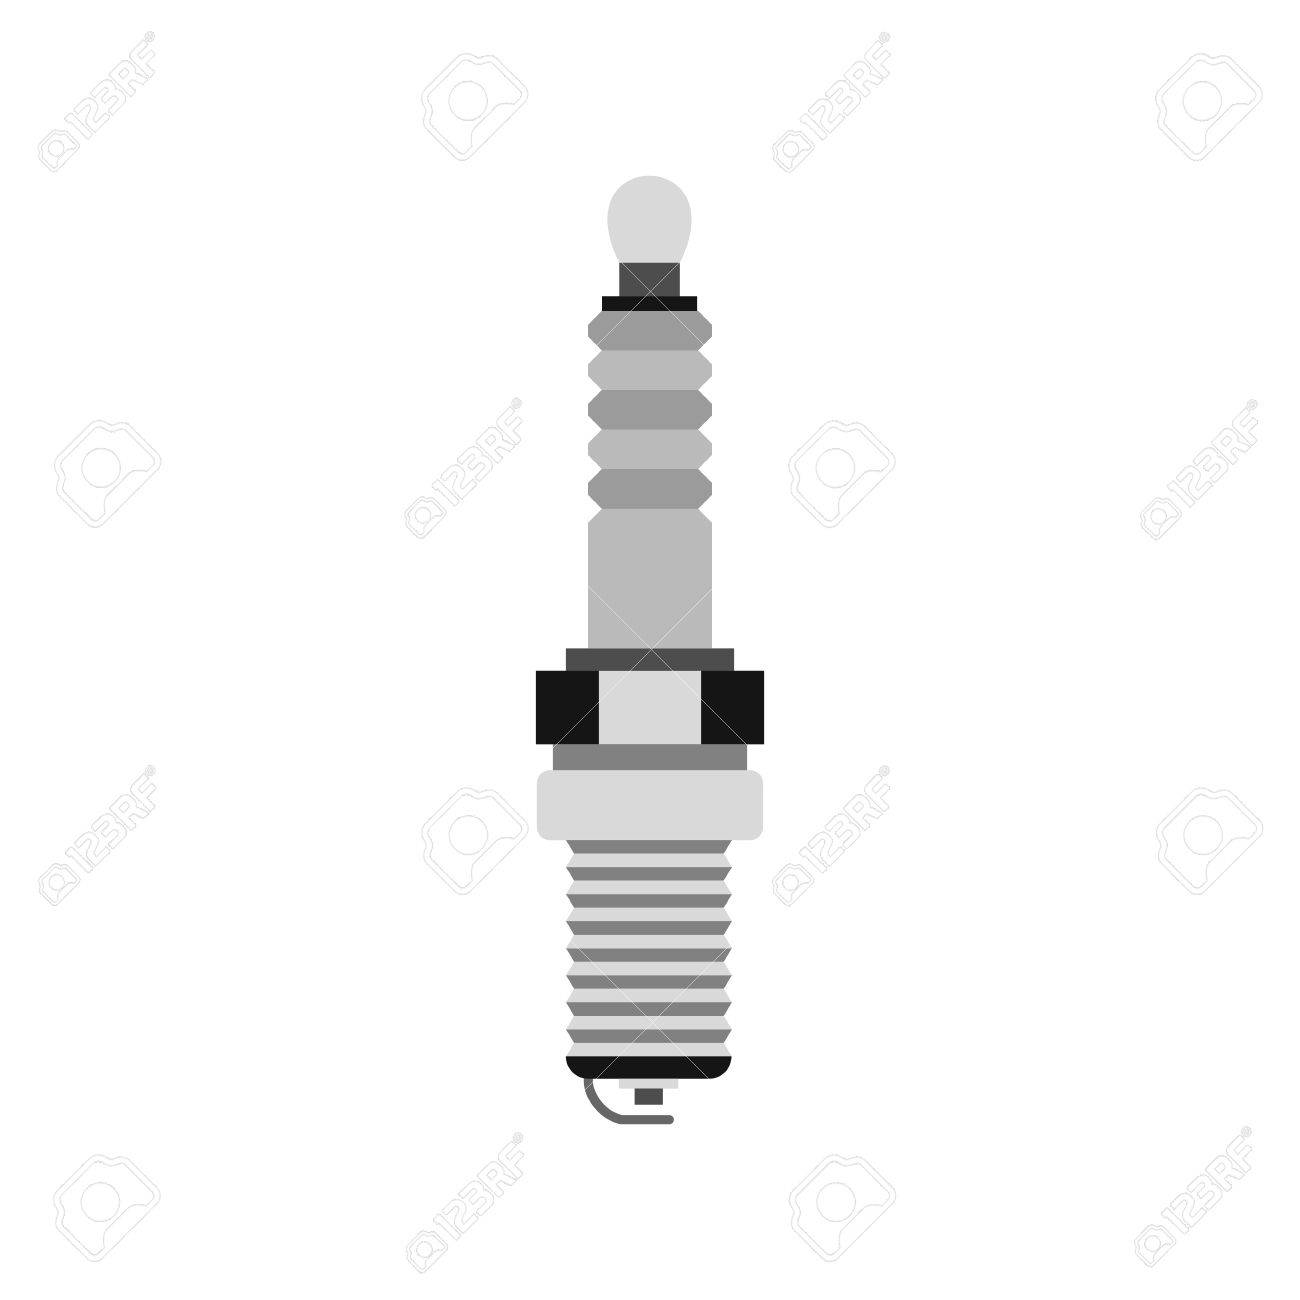 Spark Plug Icon In Flat Style Isolated On White Background